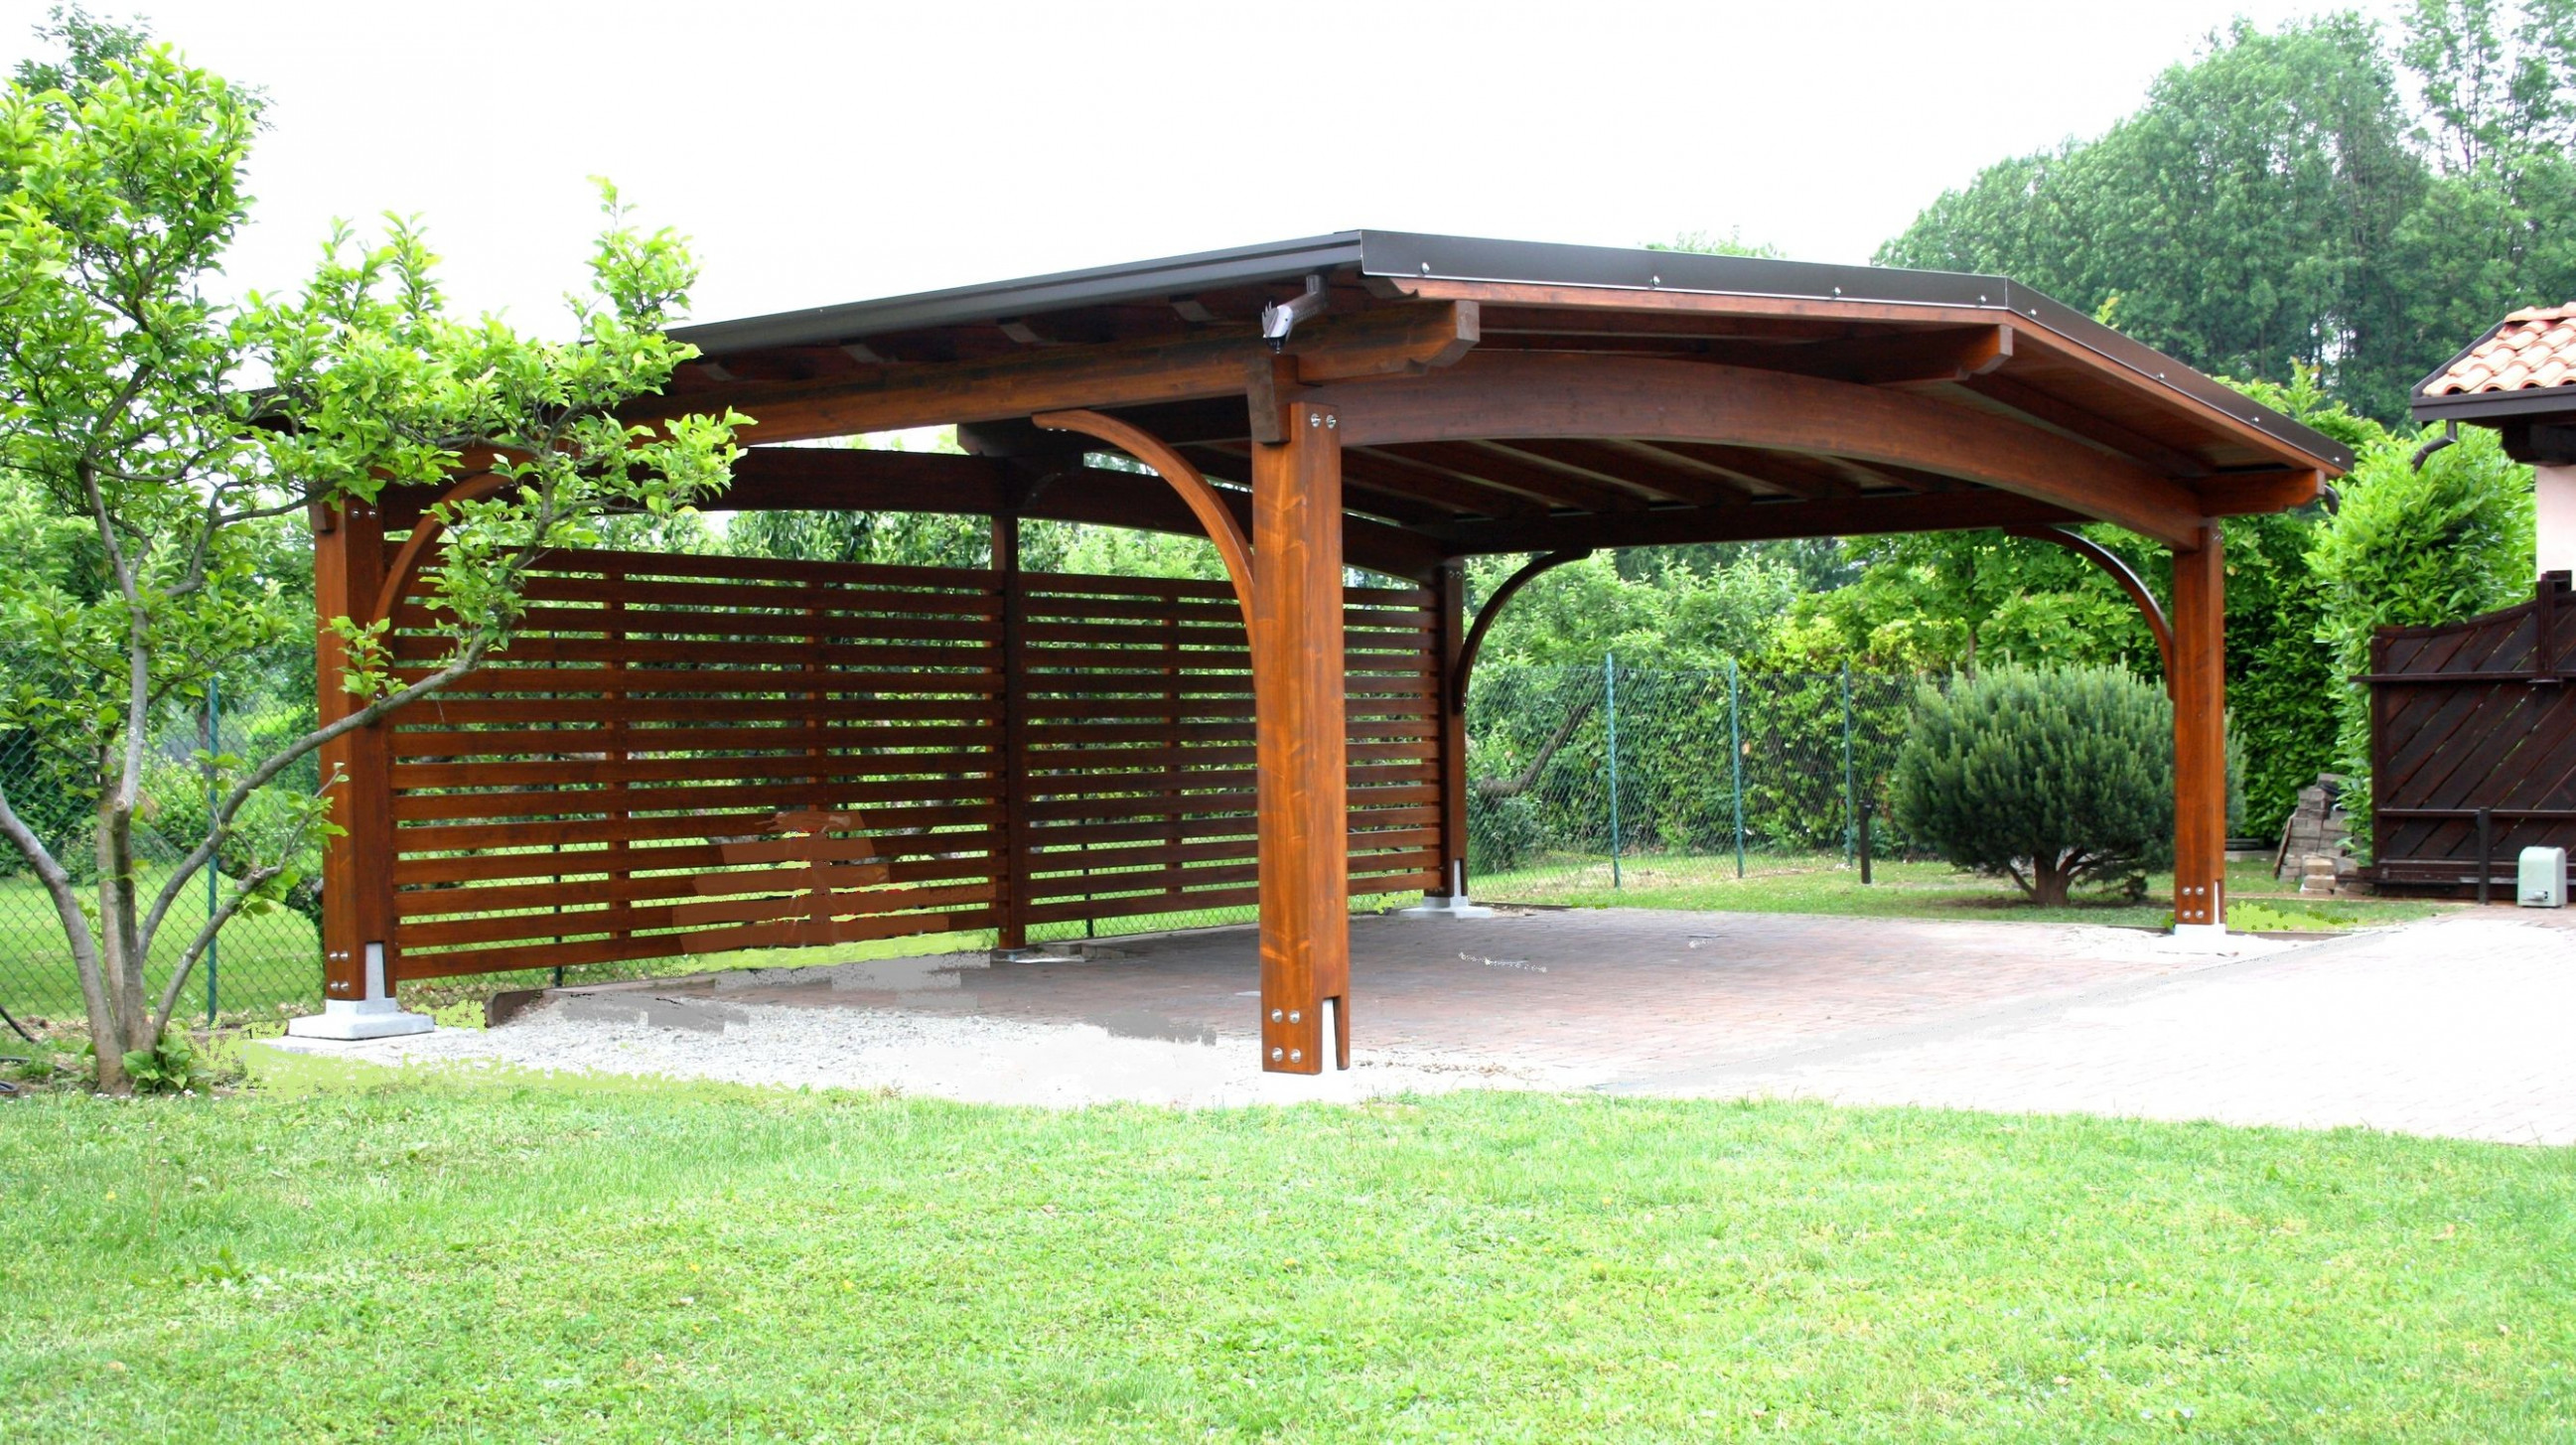 Wood Carports Photos Home Design Inside Wooden Carports Ideas